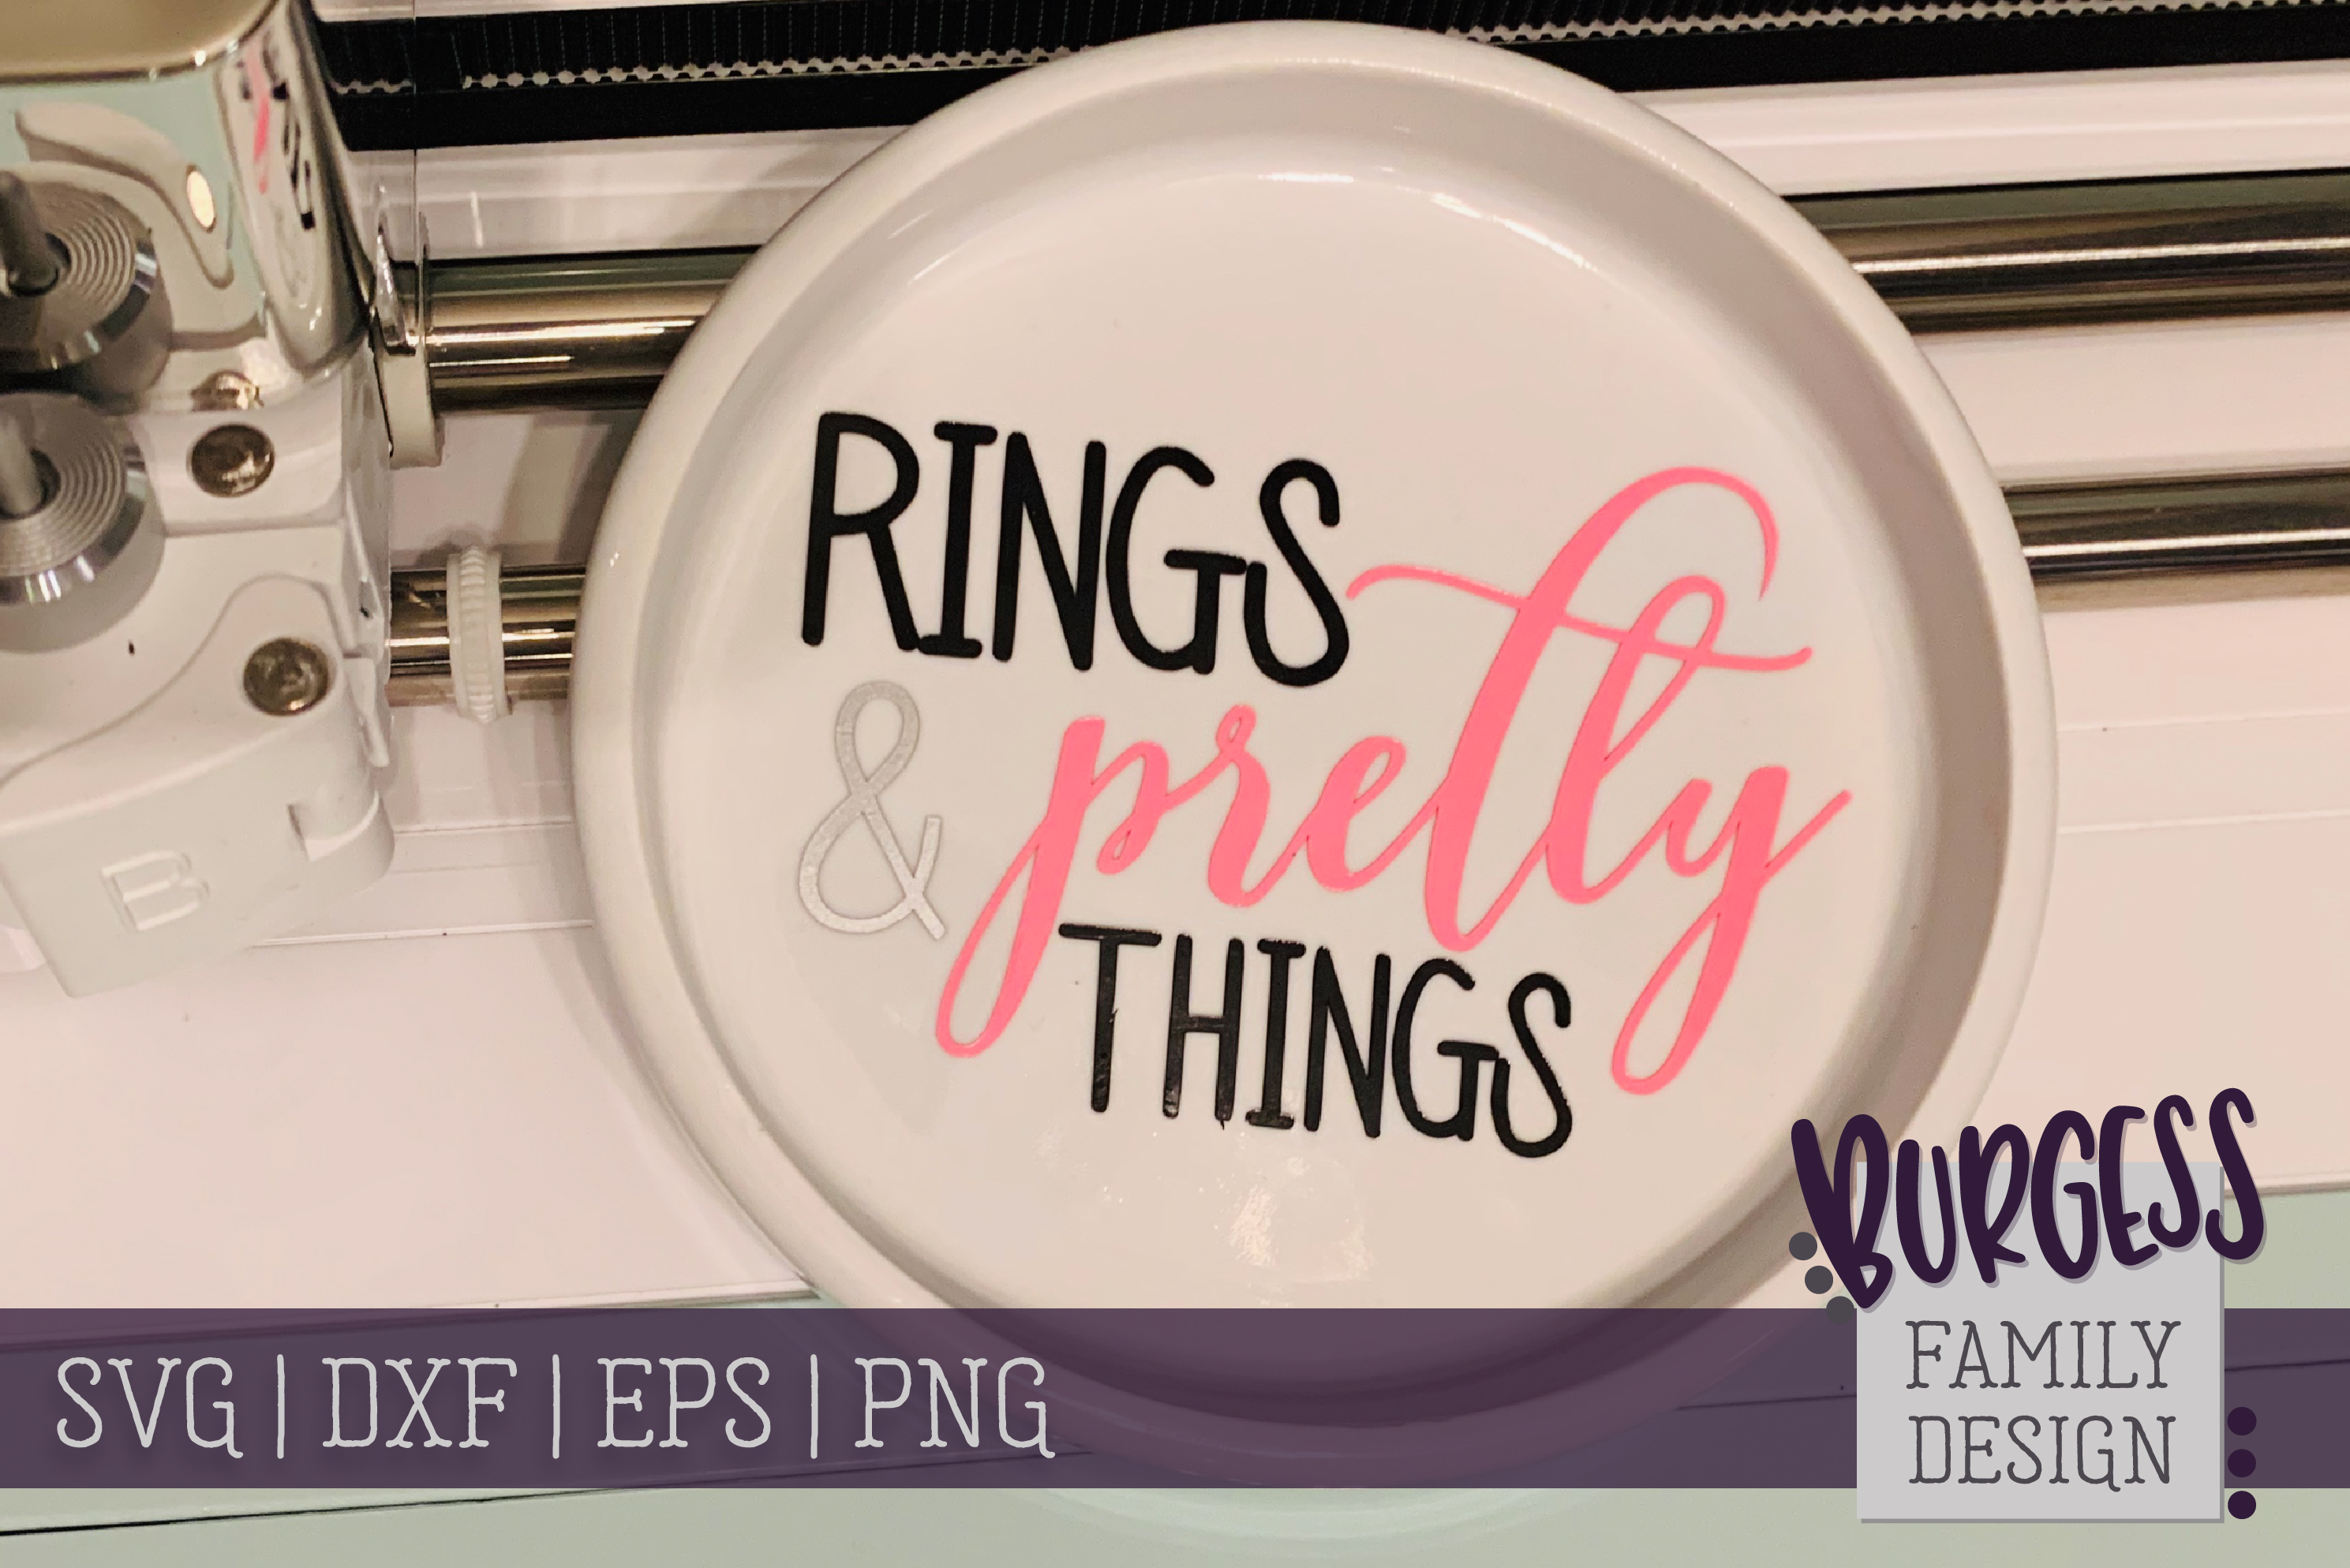 Rings & Pretty Things   SVG DXF EPS PNG example image 1